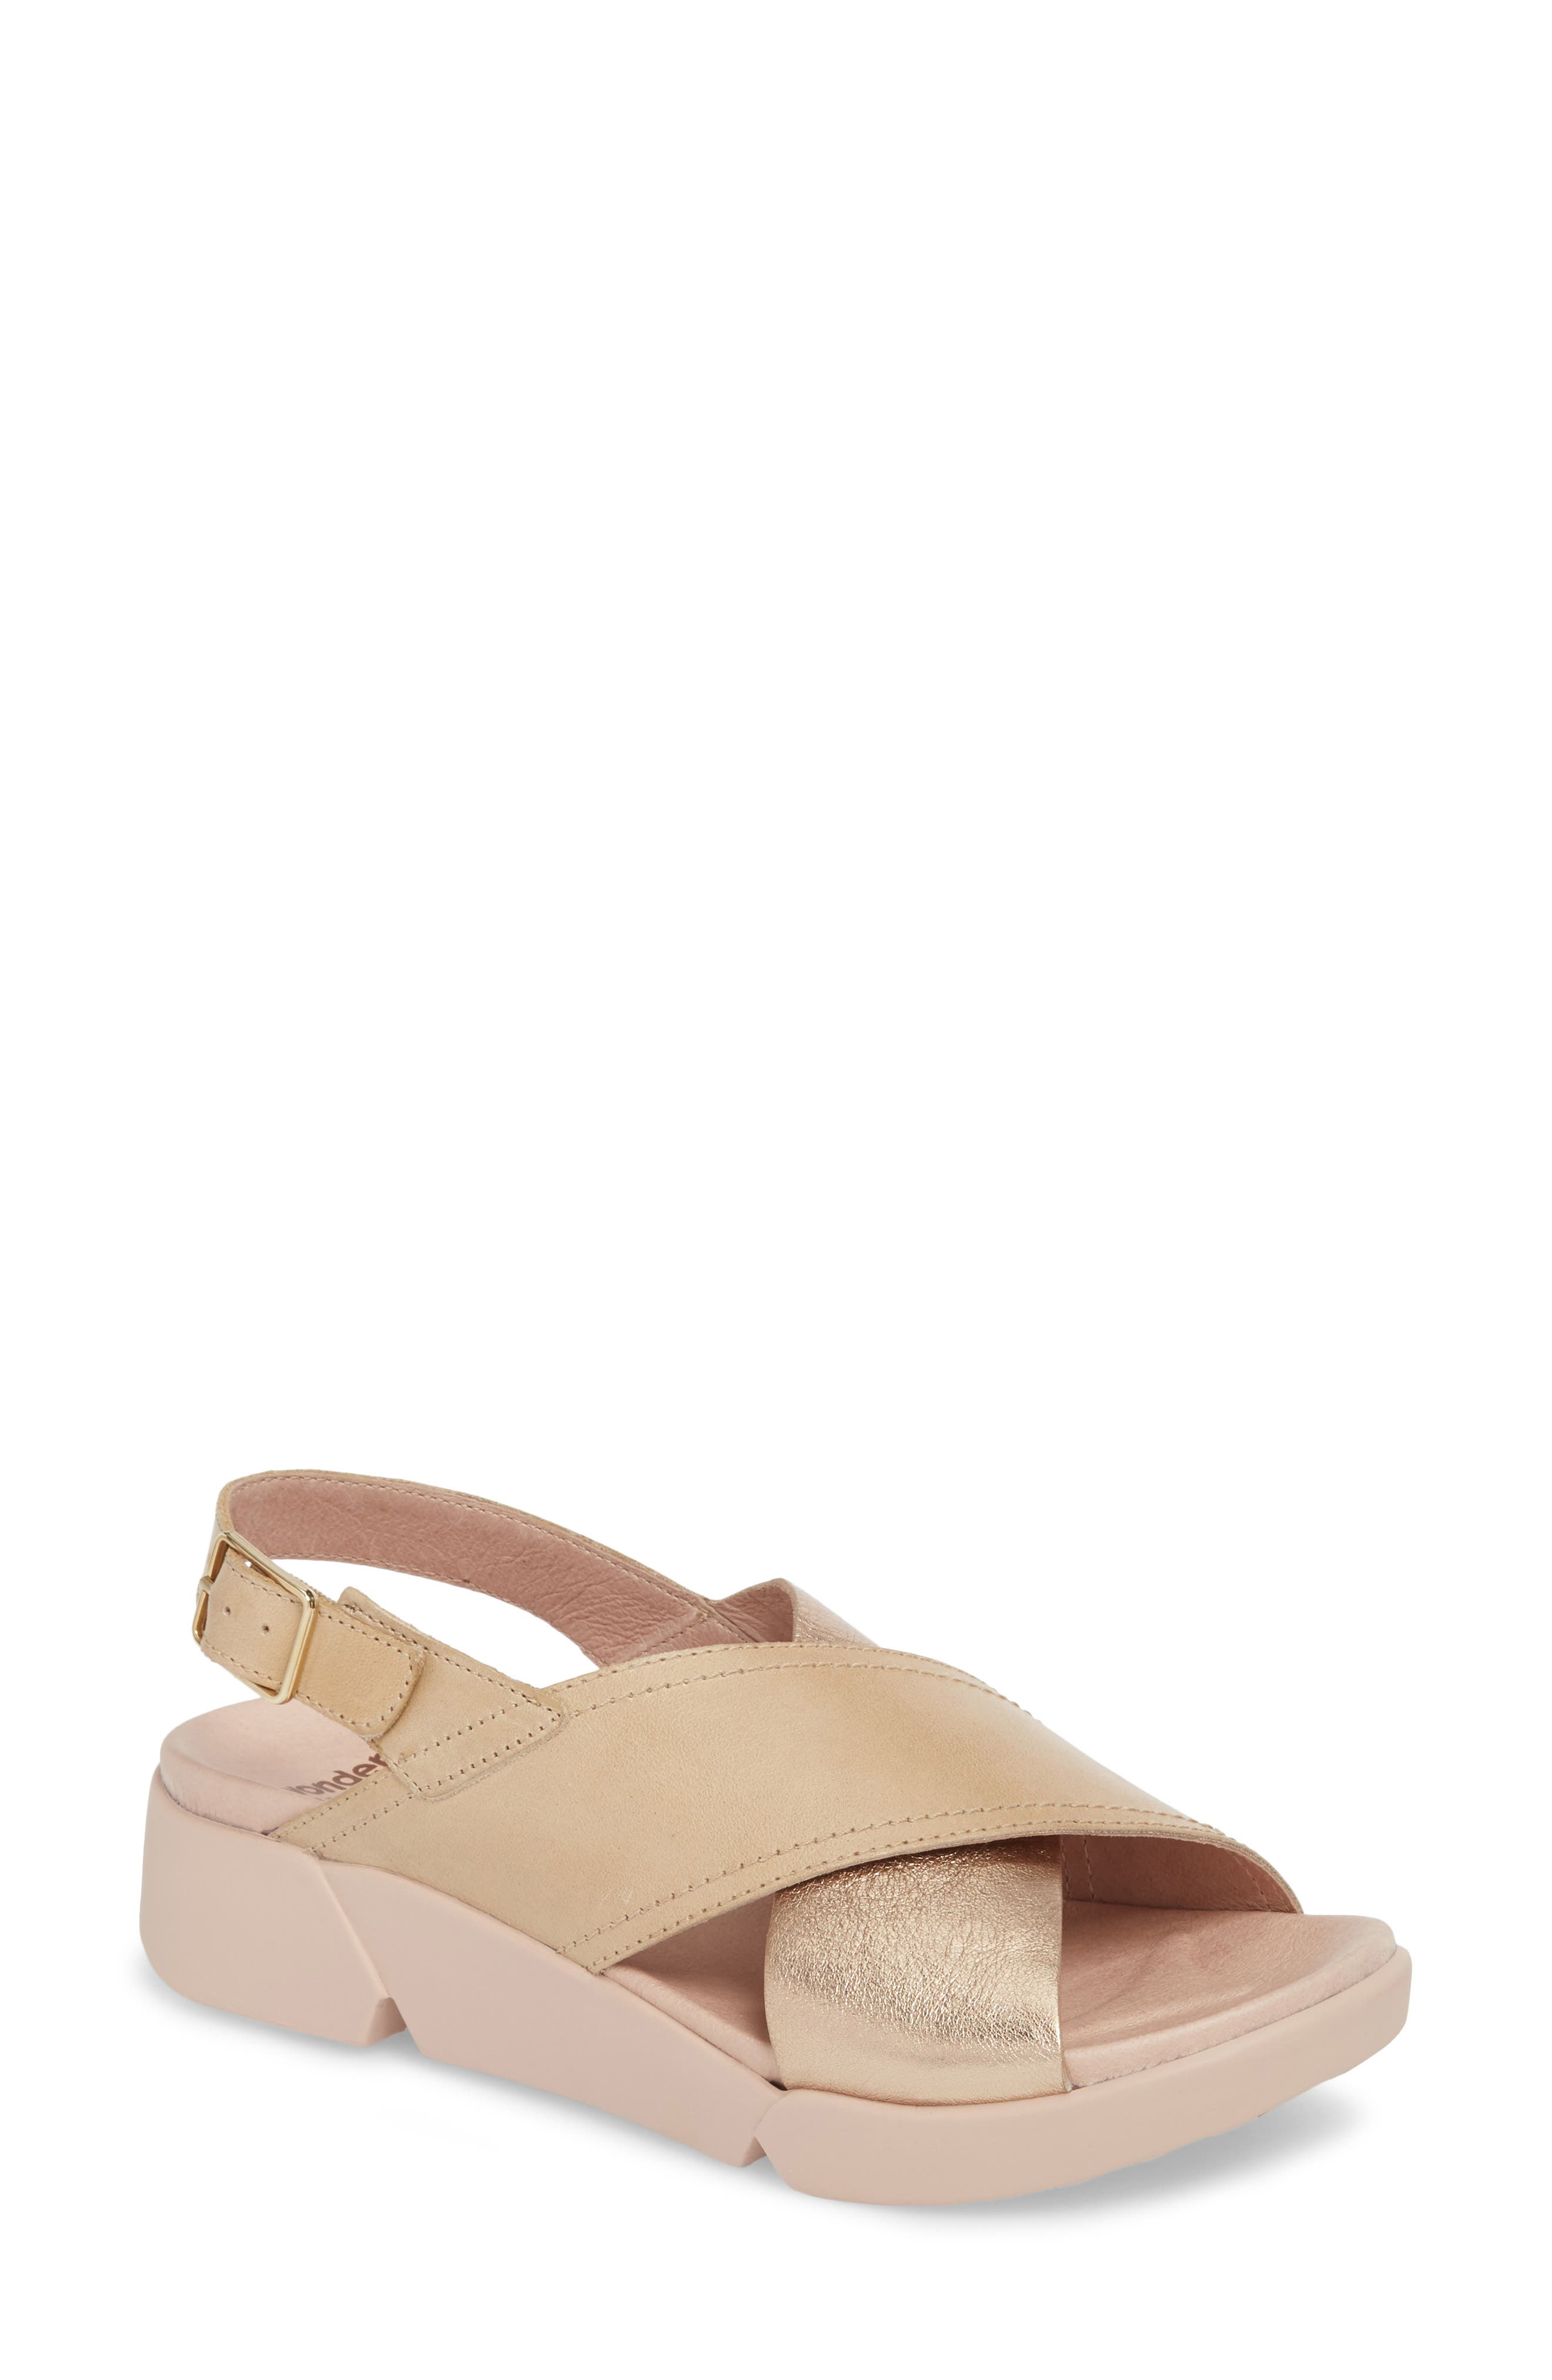 Platform Wedge Sandal,                         Main,                         color, Oro/ Taupe Leather